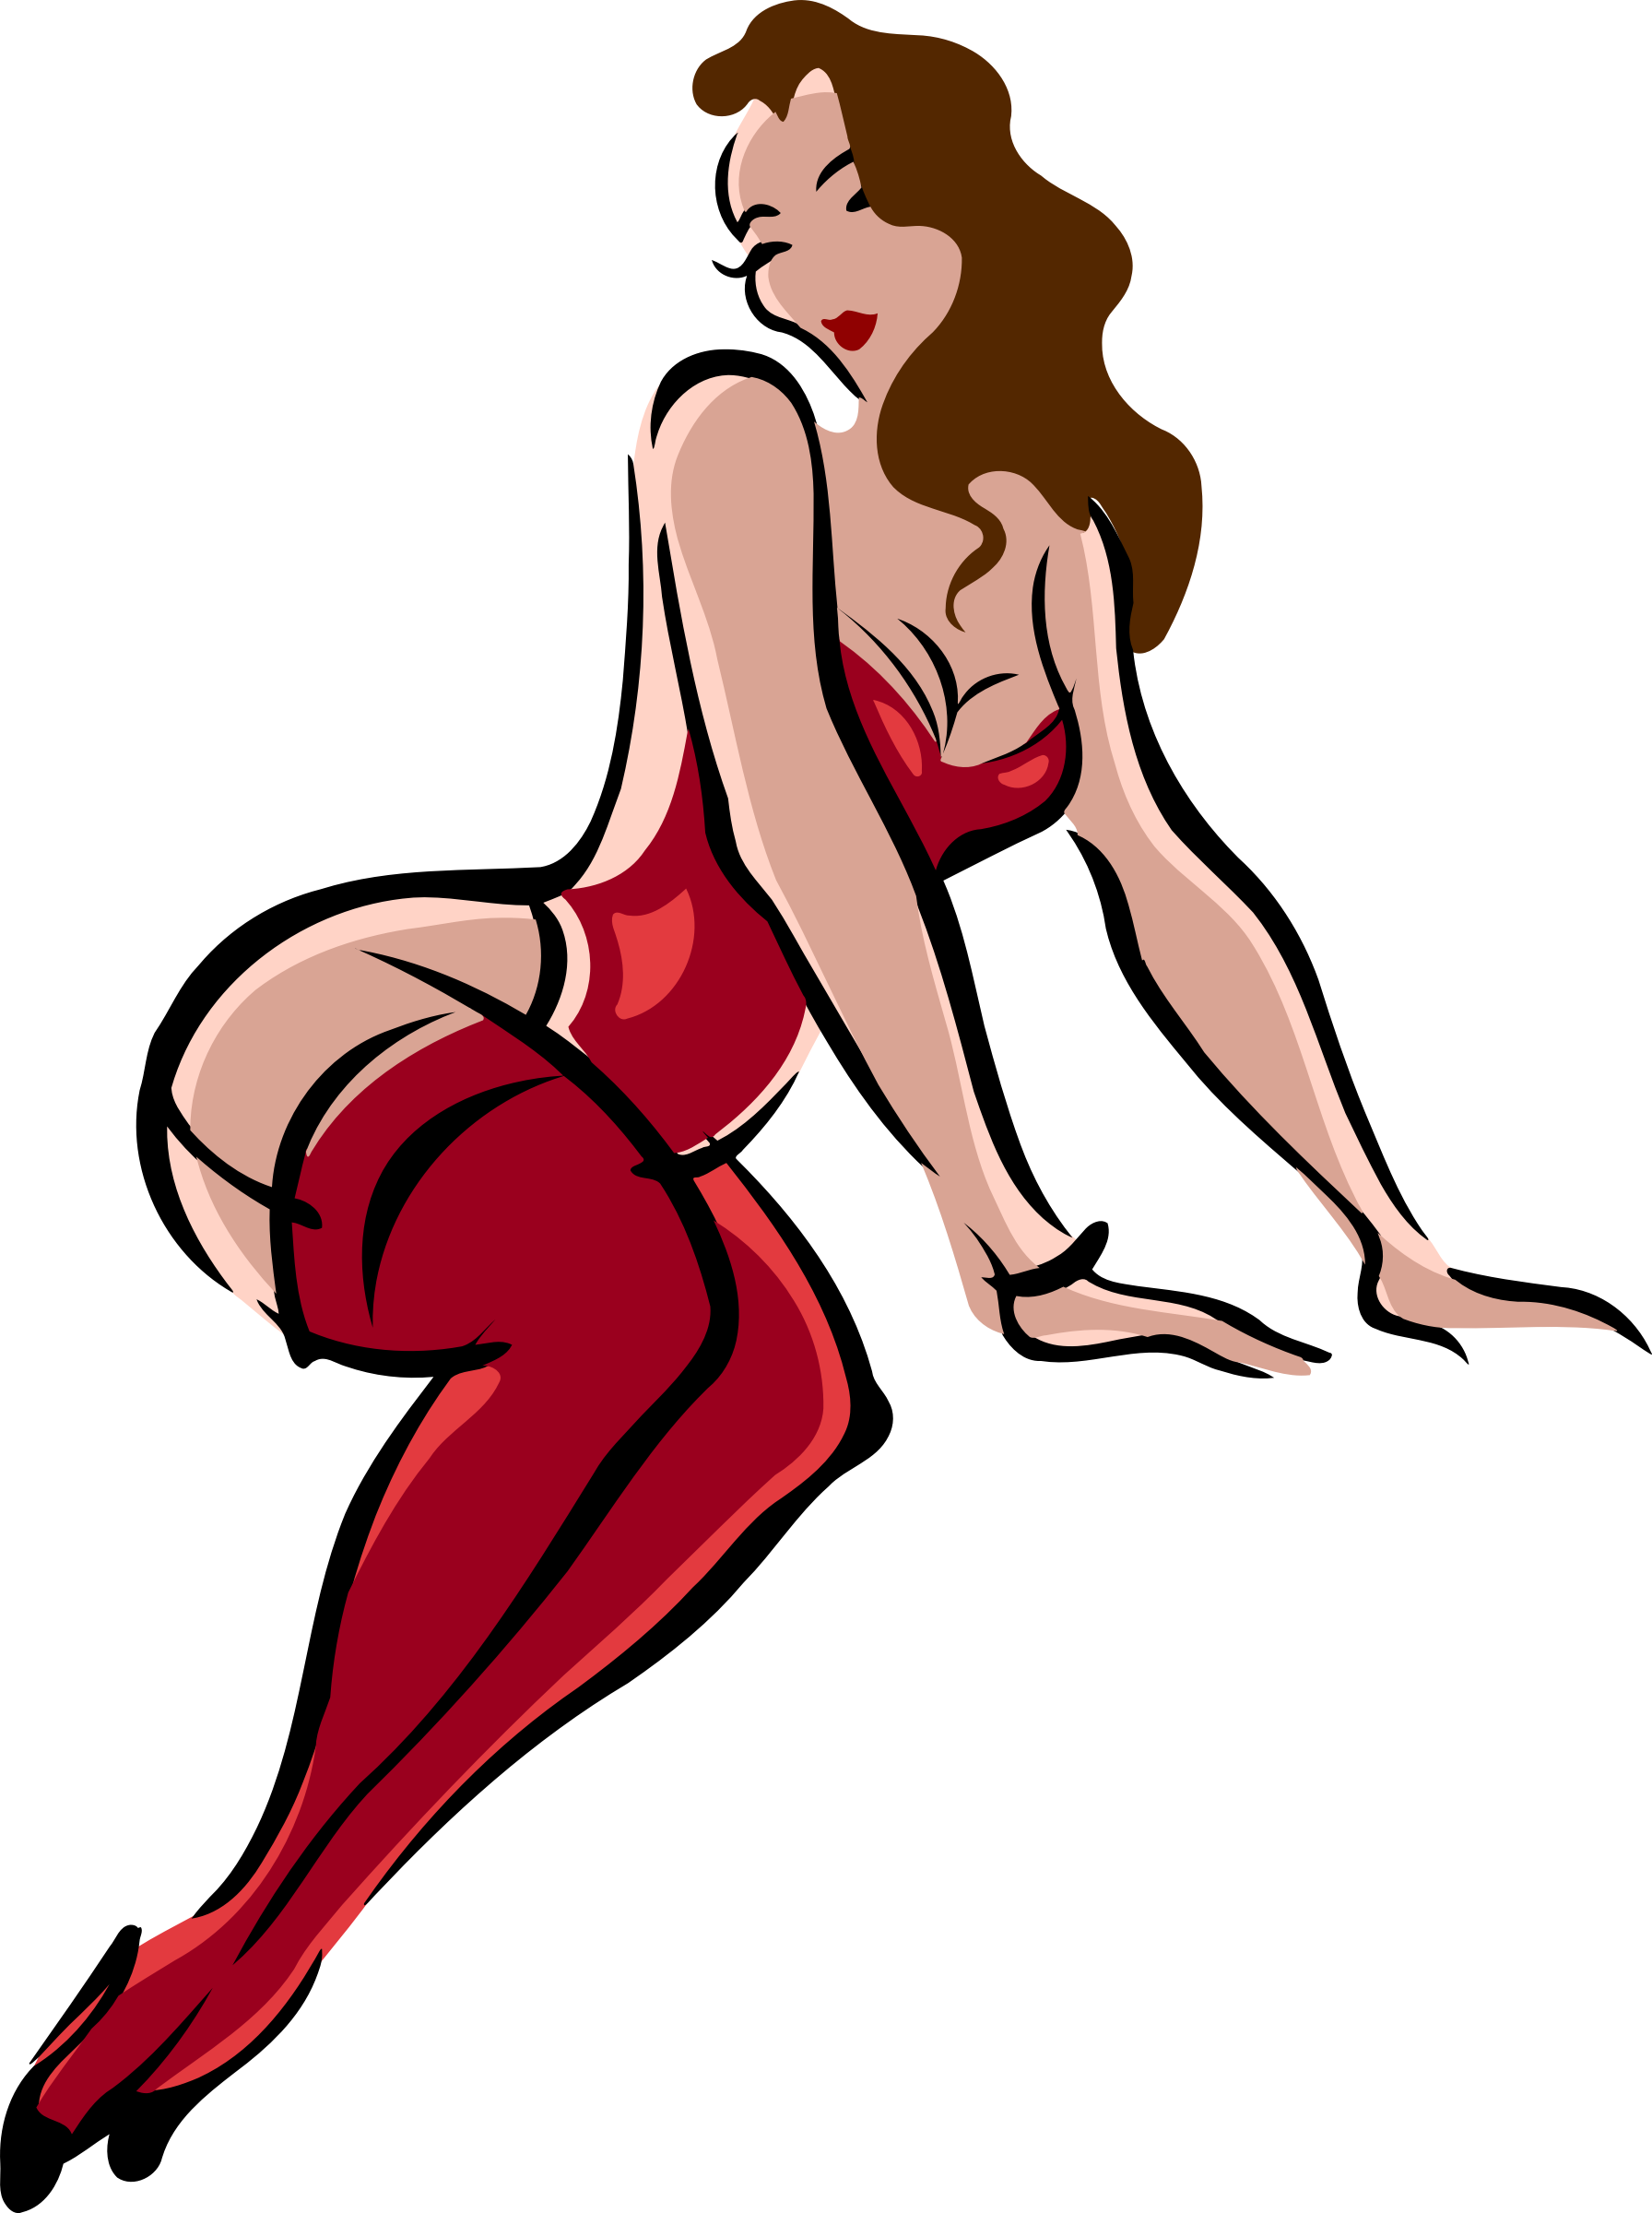 Lingerie model, light skin, brown hair, red clothes by Firkin